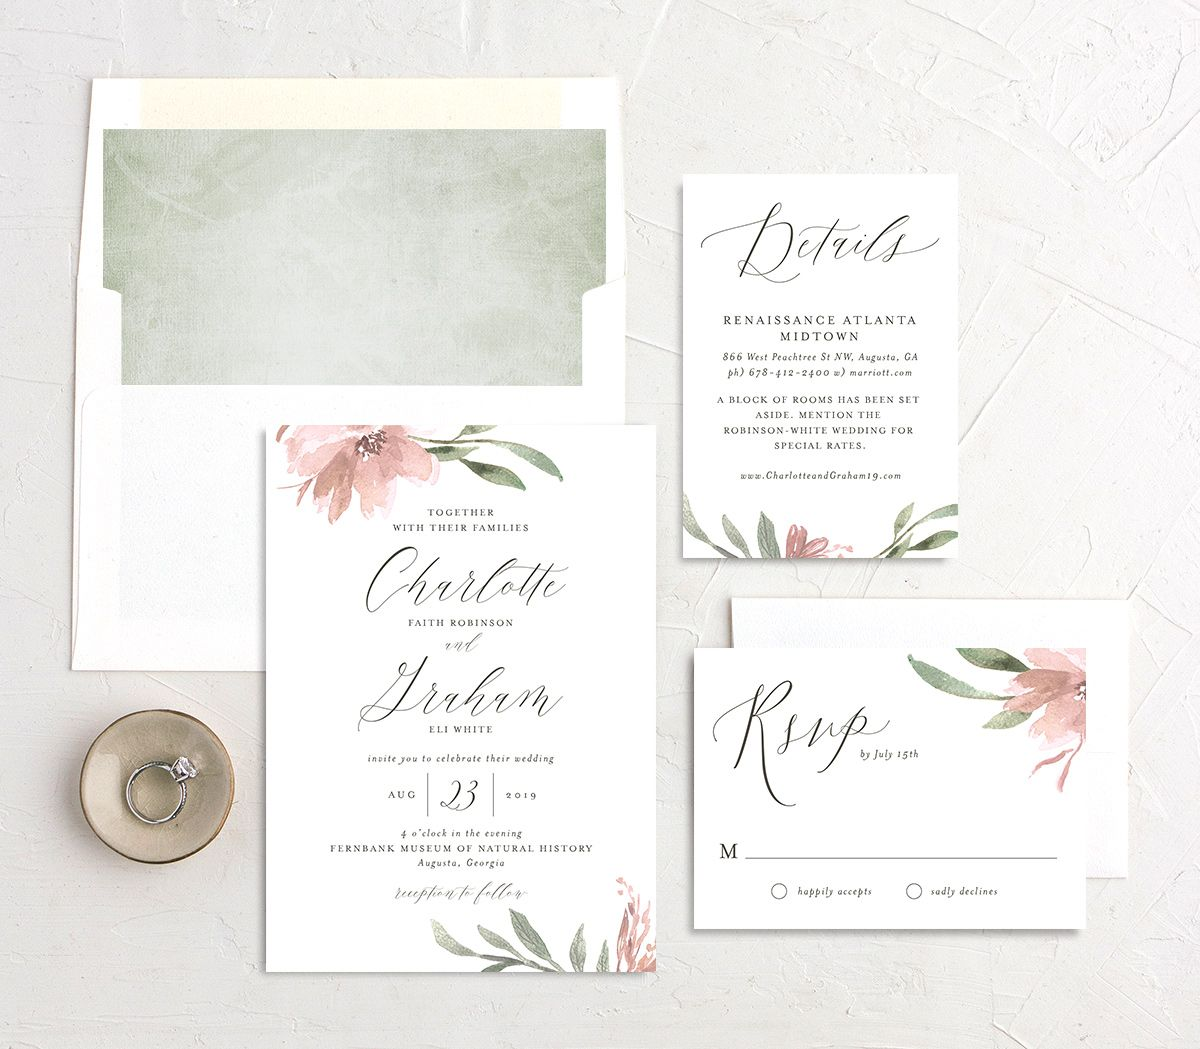 muted floral wedding invitation stationery suite in pink